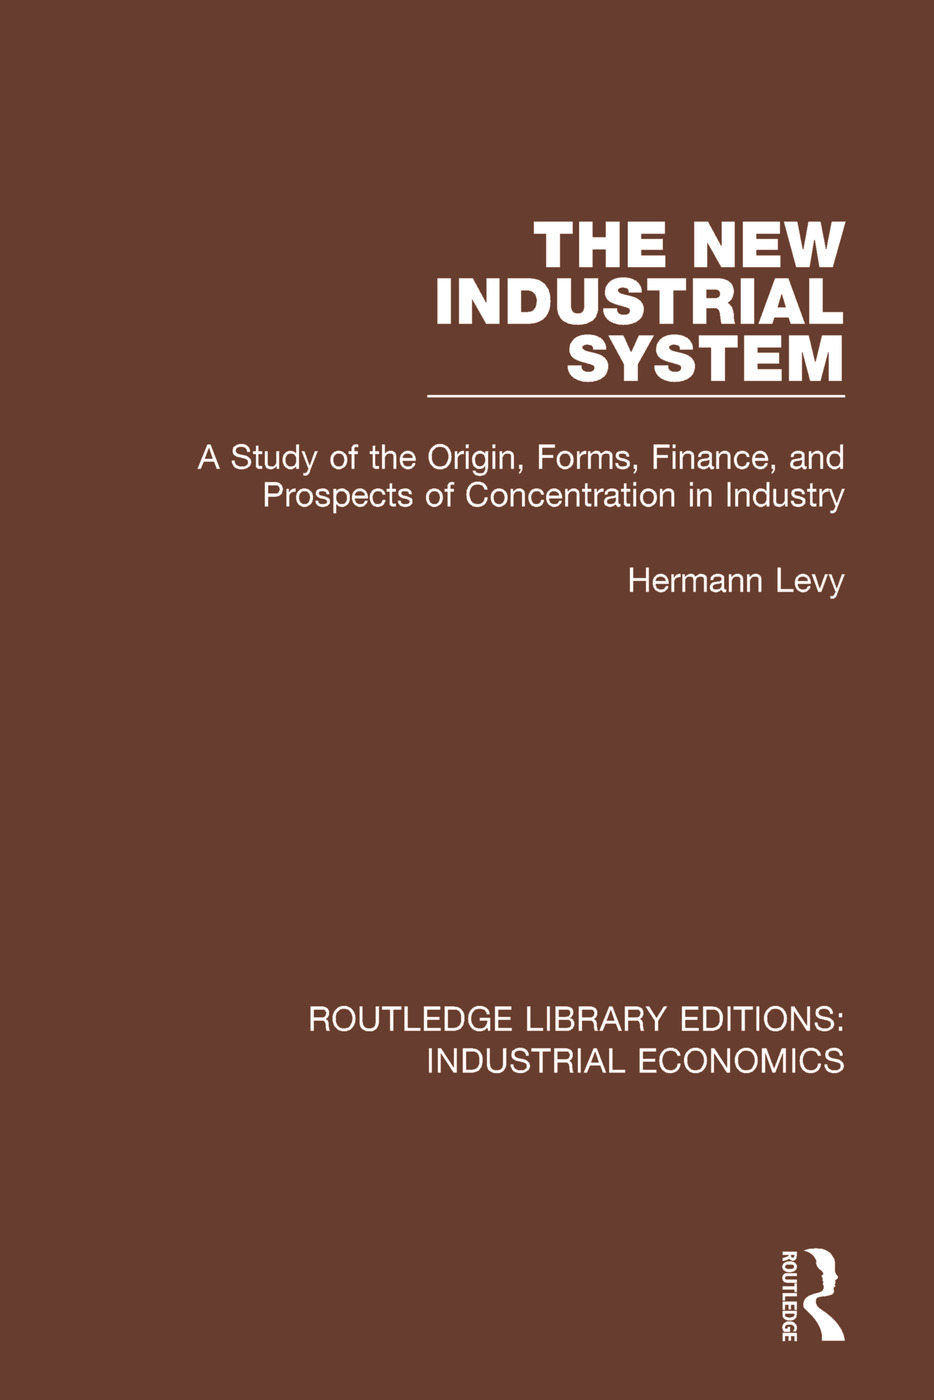 The New Industrial System: A Study of the Origin, Forms, Finance, and Prospects of Concentration in Industry book cover